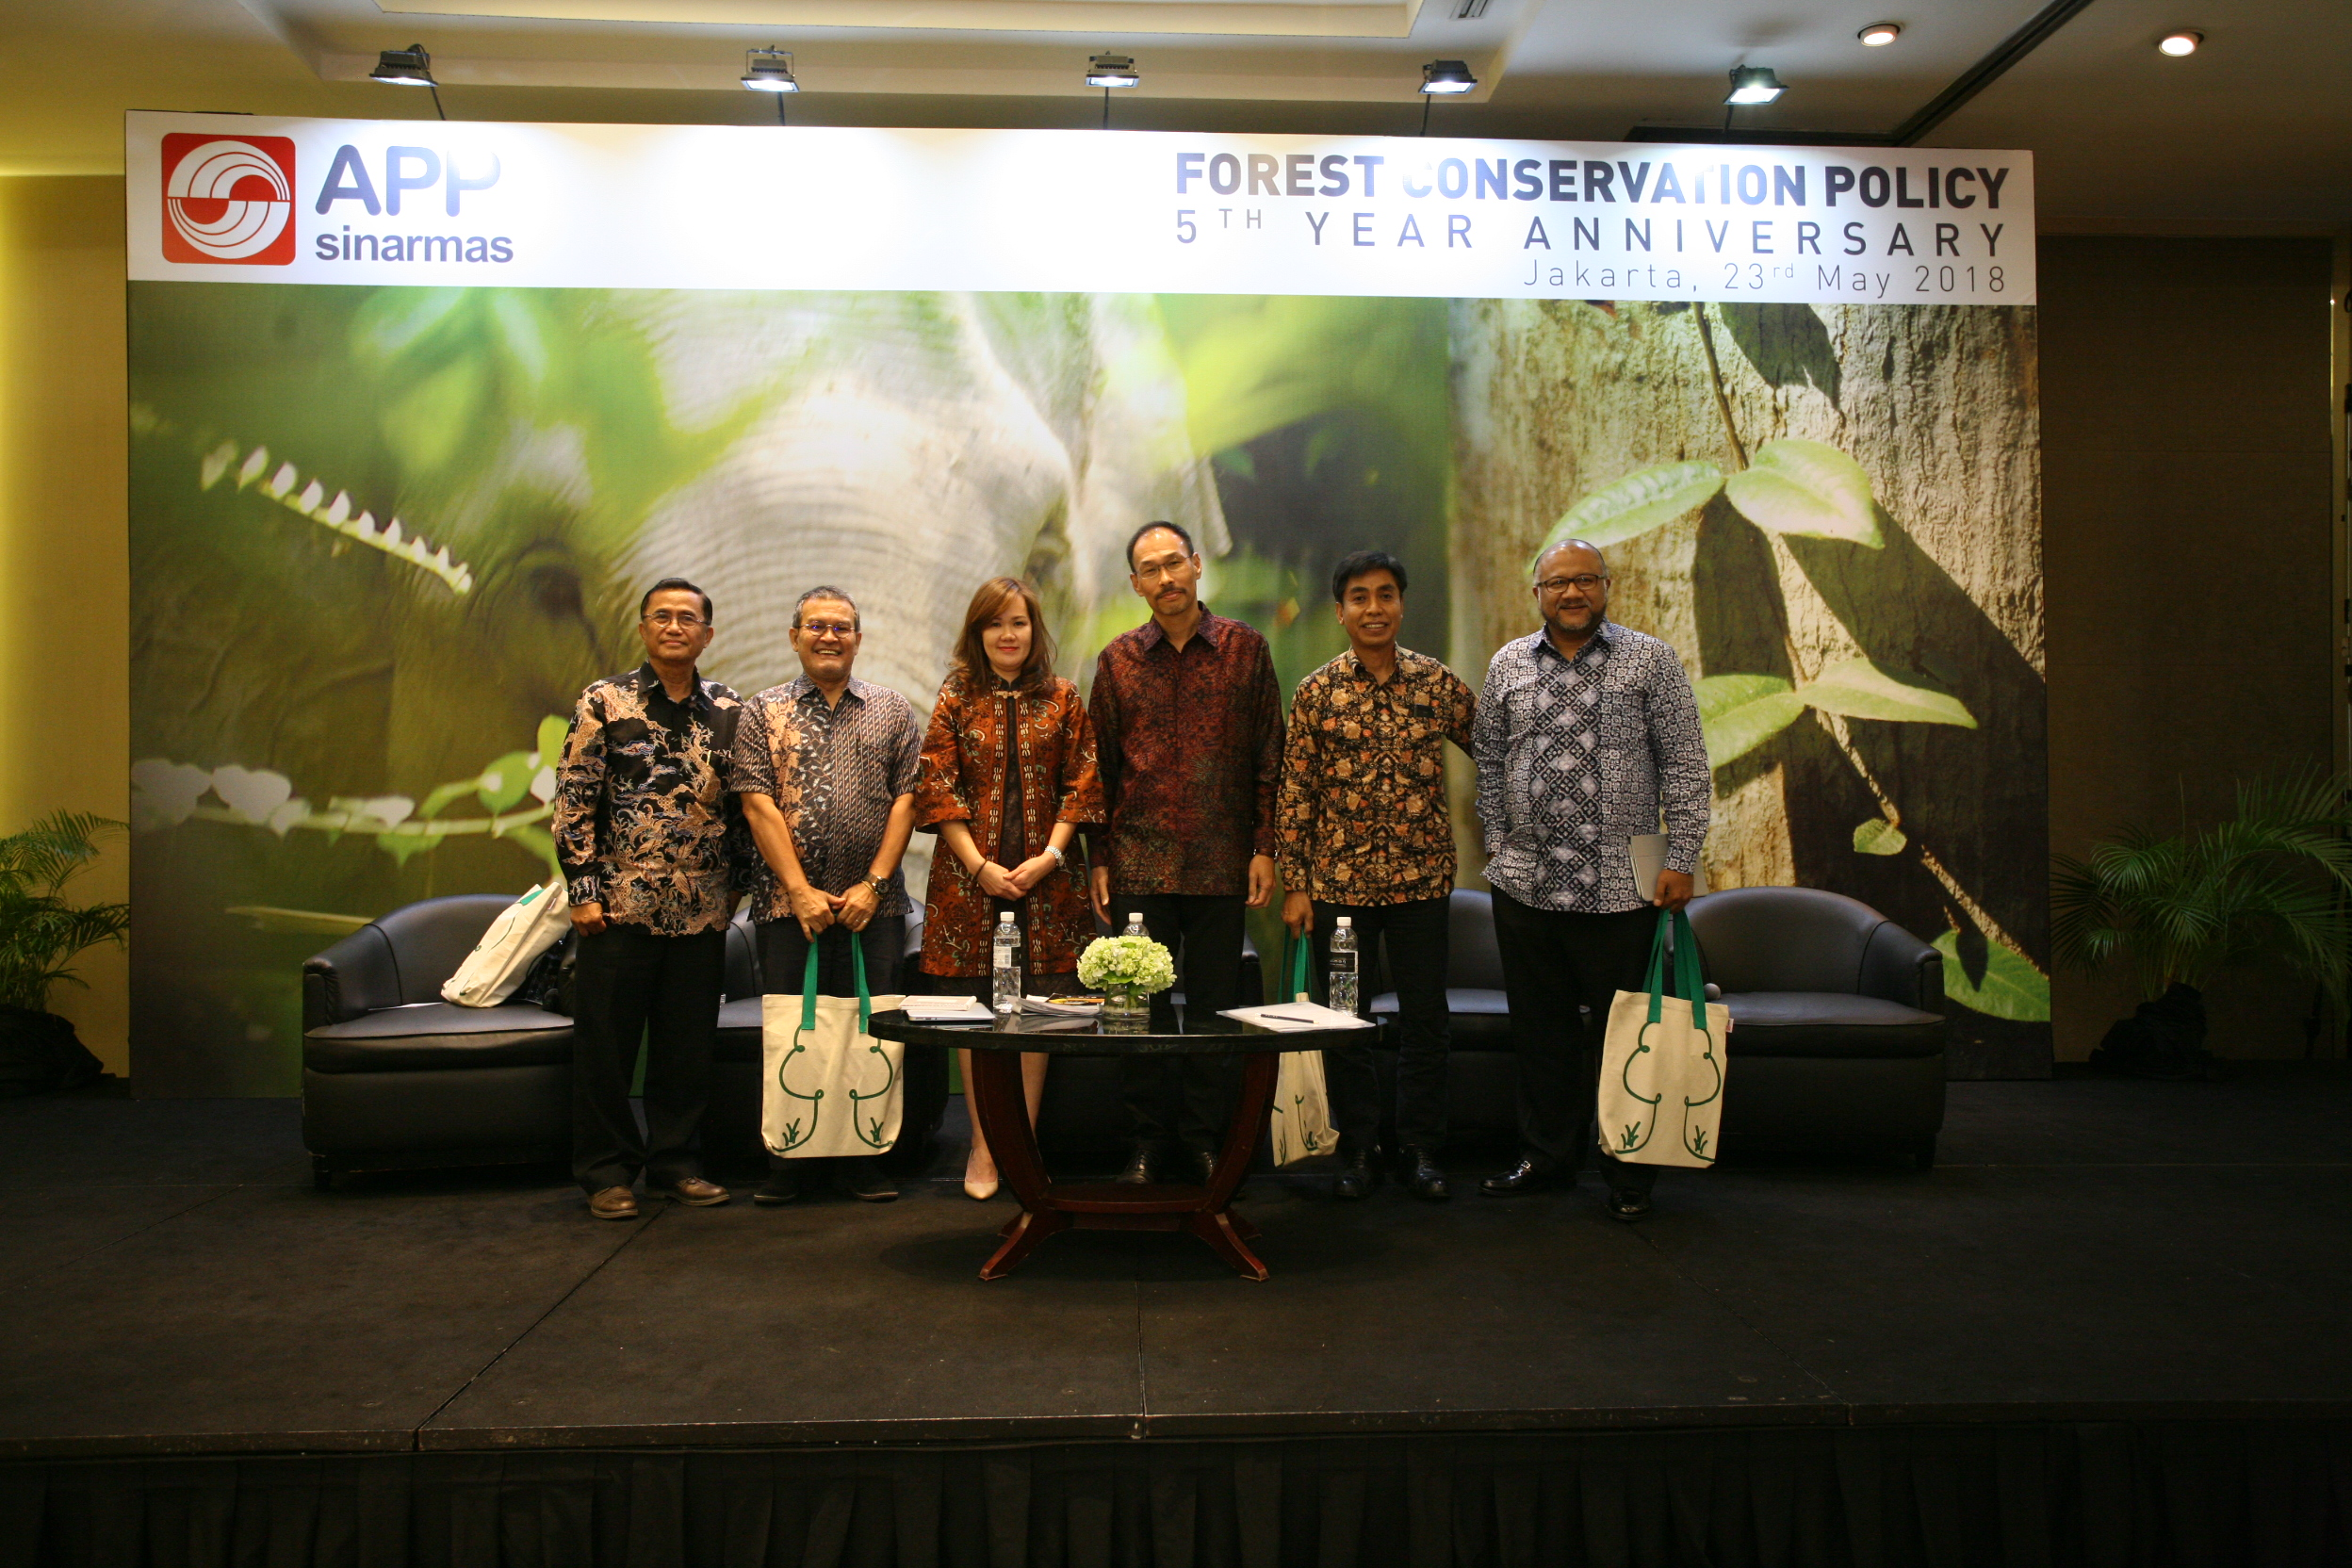 In the five years since implementing the FCP, APP has invested about USD 300 million in forest monitoring systems, landscape restoration, fire prevention and peatland research and community engagement